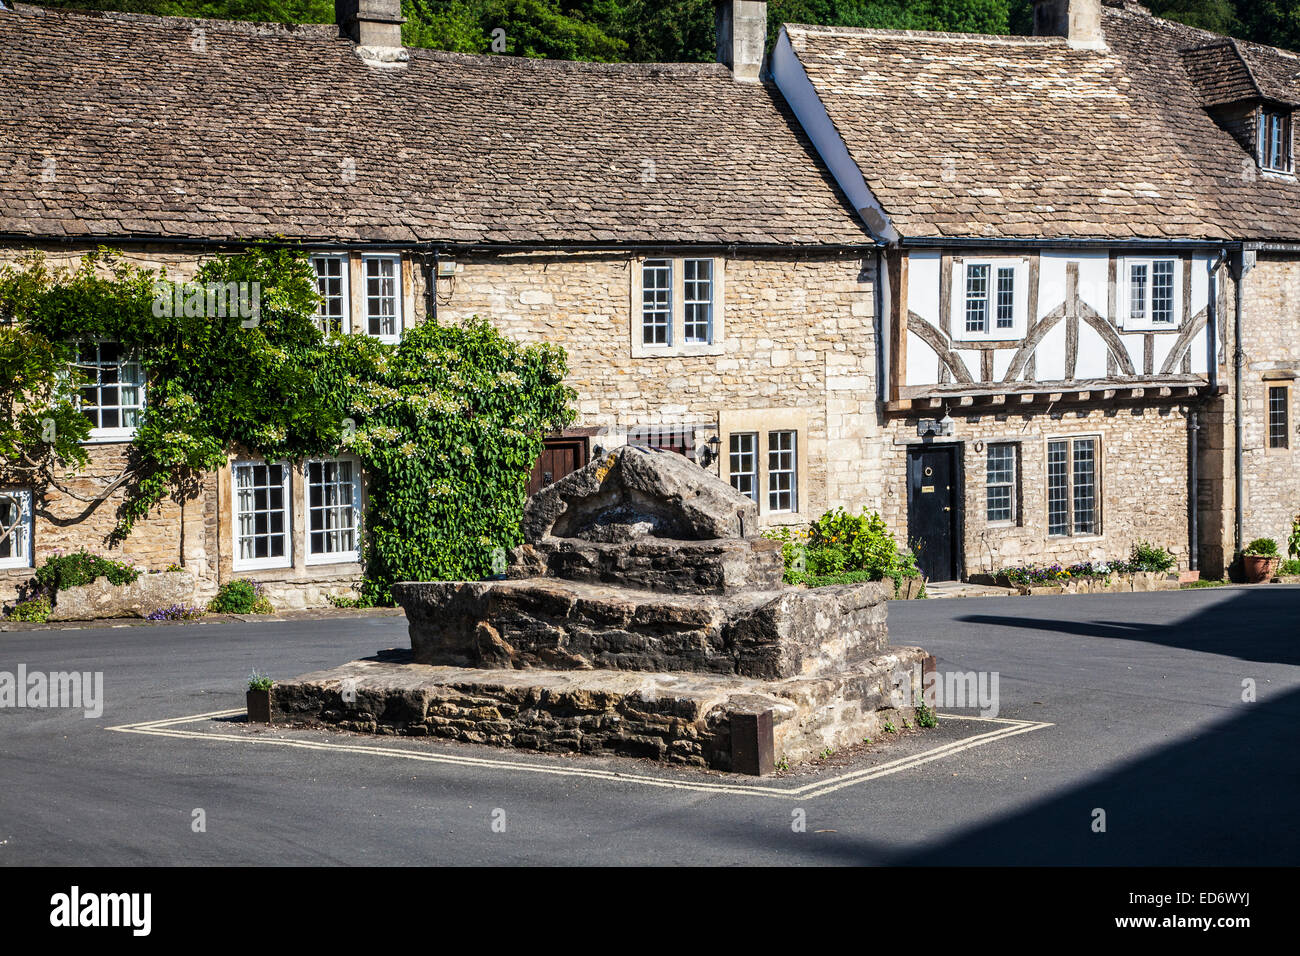 The half-timbered Court House in the Cotswold village of Castle Combe in Wiltshire with the remains of the buttercross - Stock Image